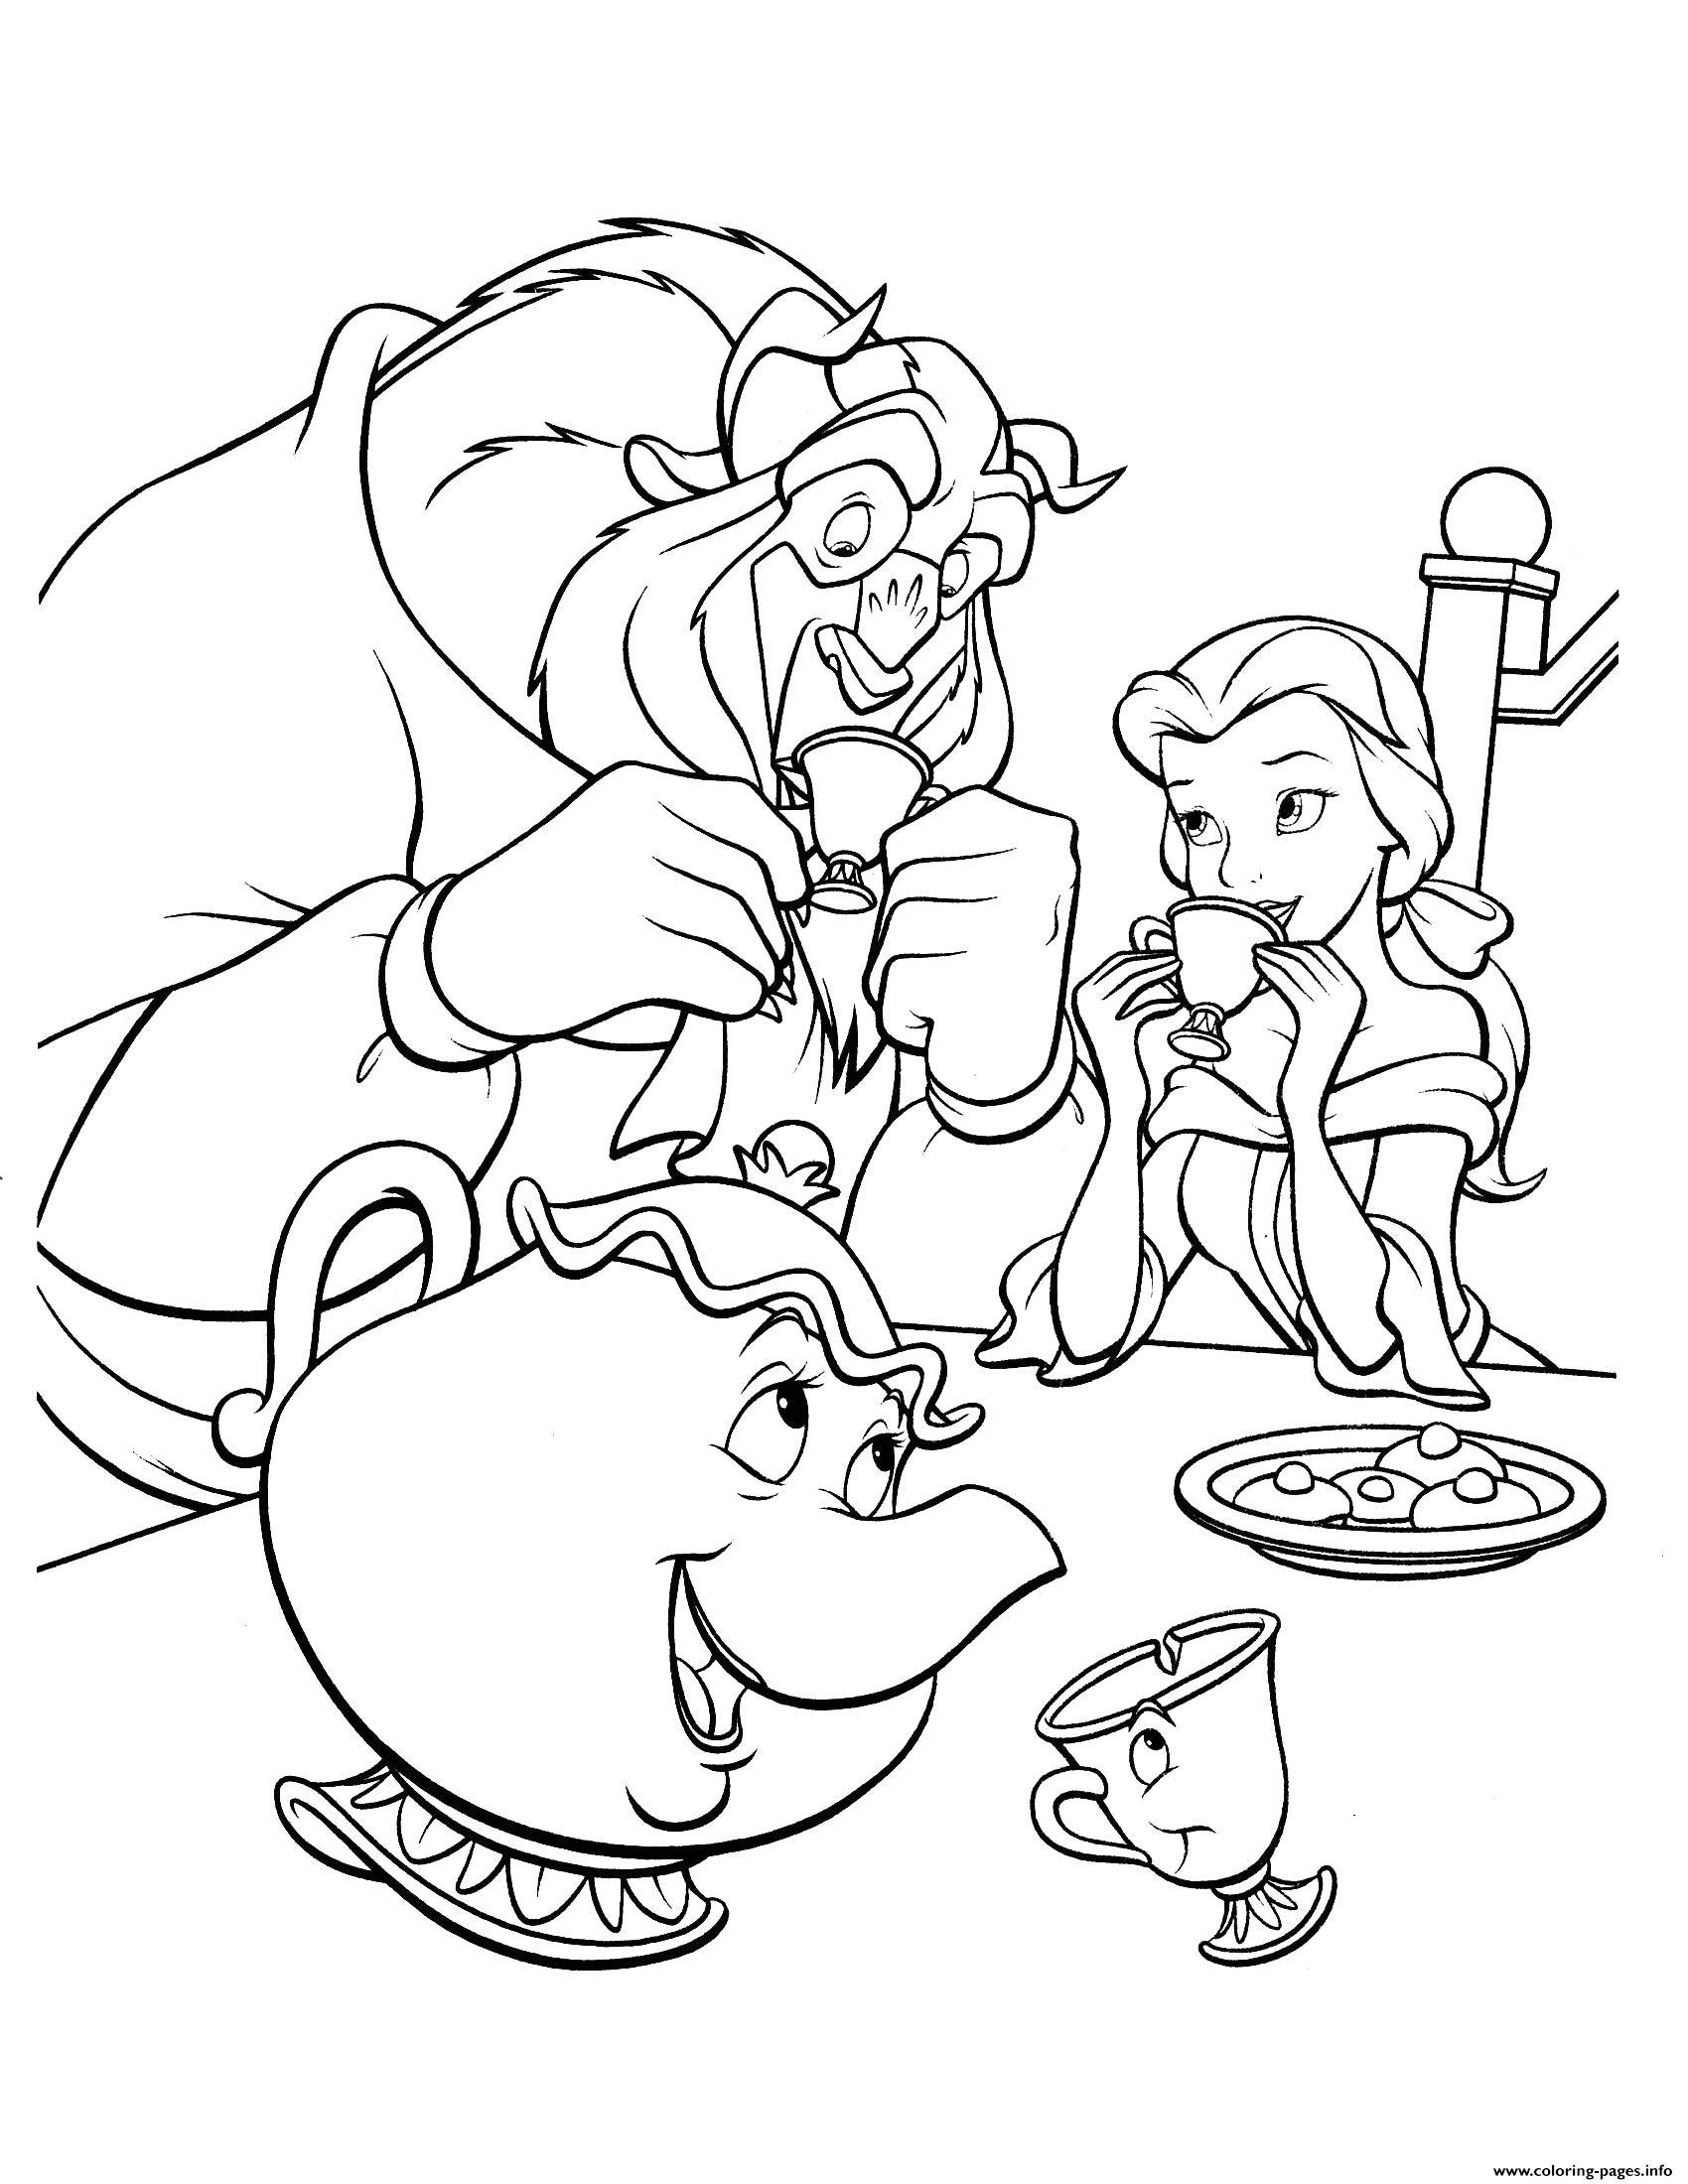 Free Printable Coloring Pages Beauty and the Beast Beauty and Beast Drink Coffee Coloring Pages Printable